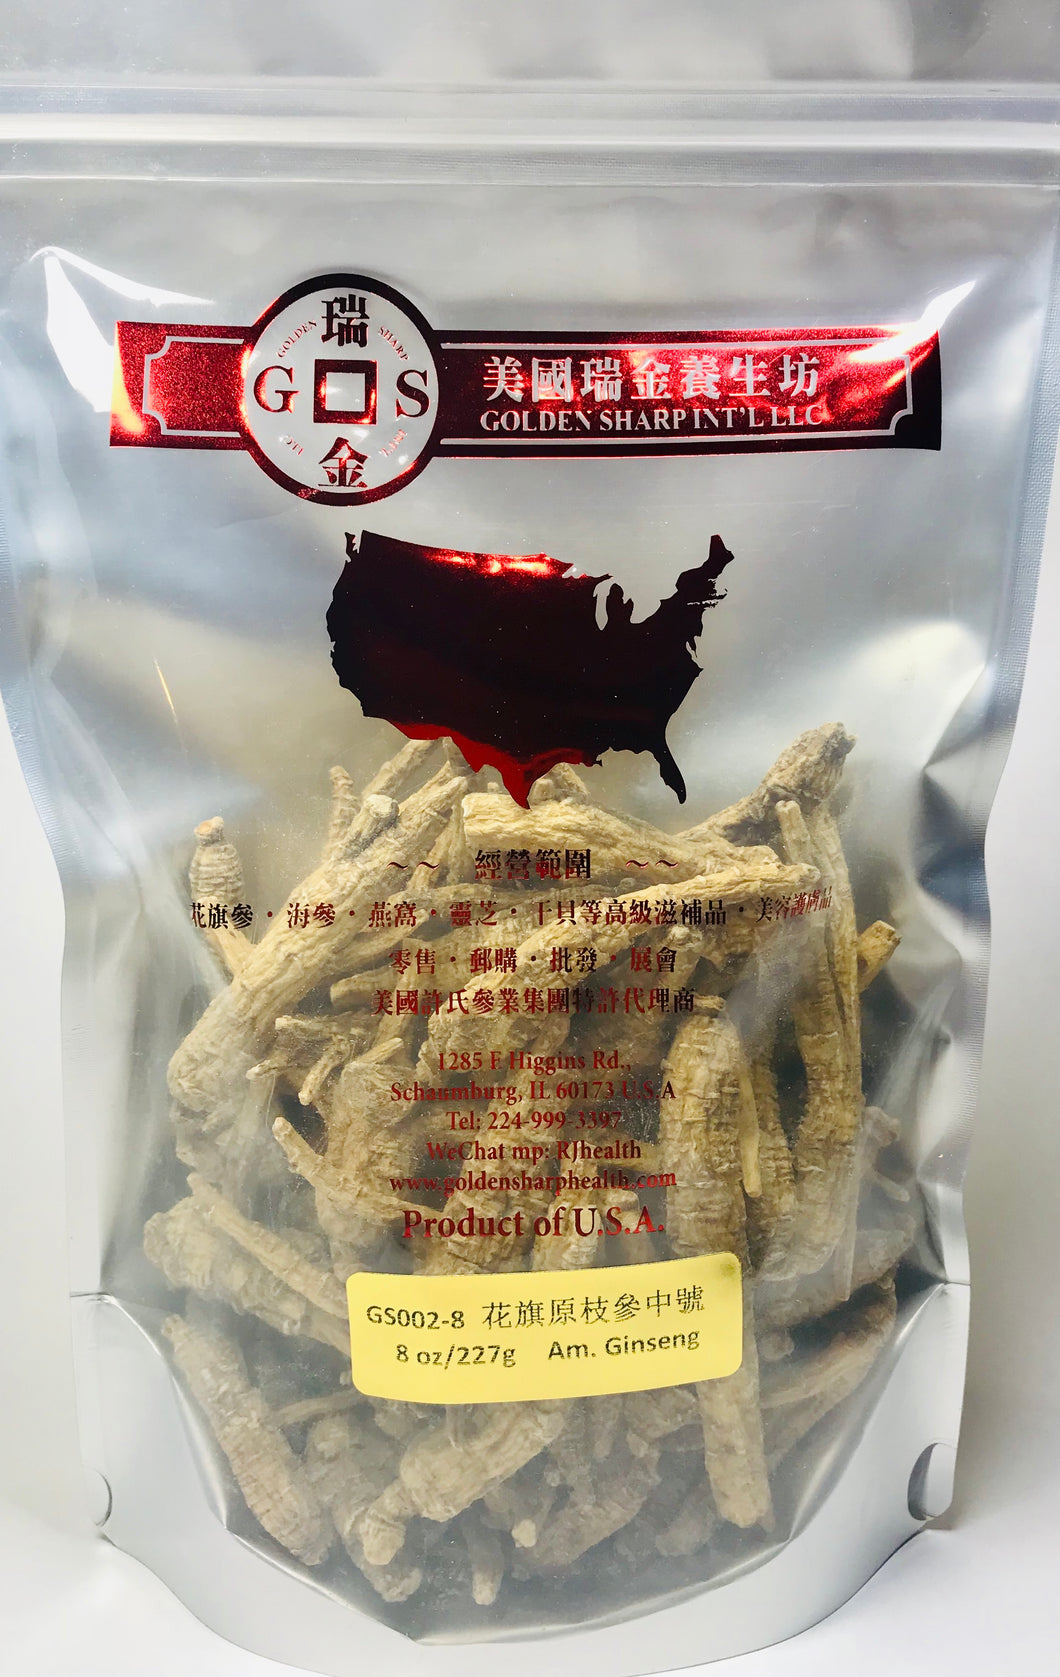 American Ginseng, Mid Size Whole Root (原枝花旗參中號), 8oz/16oz